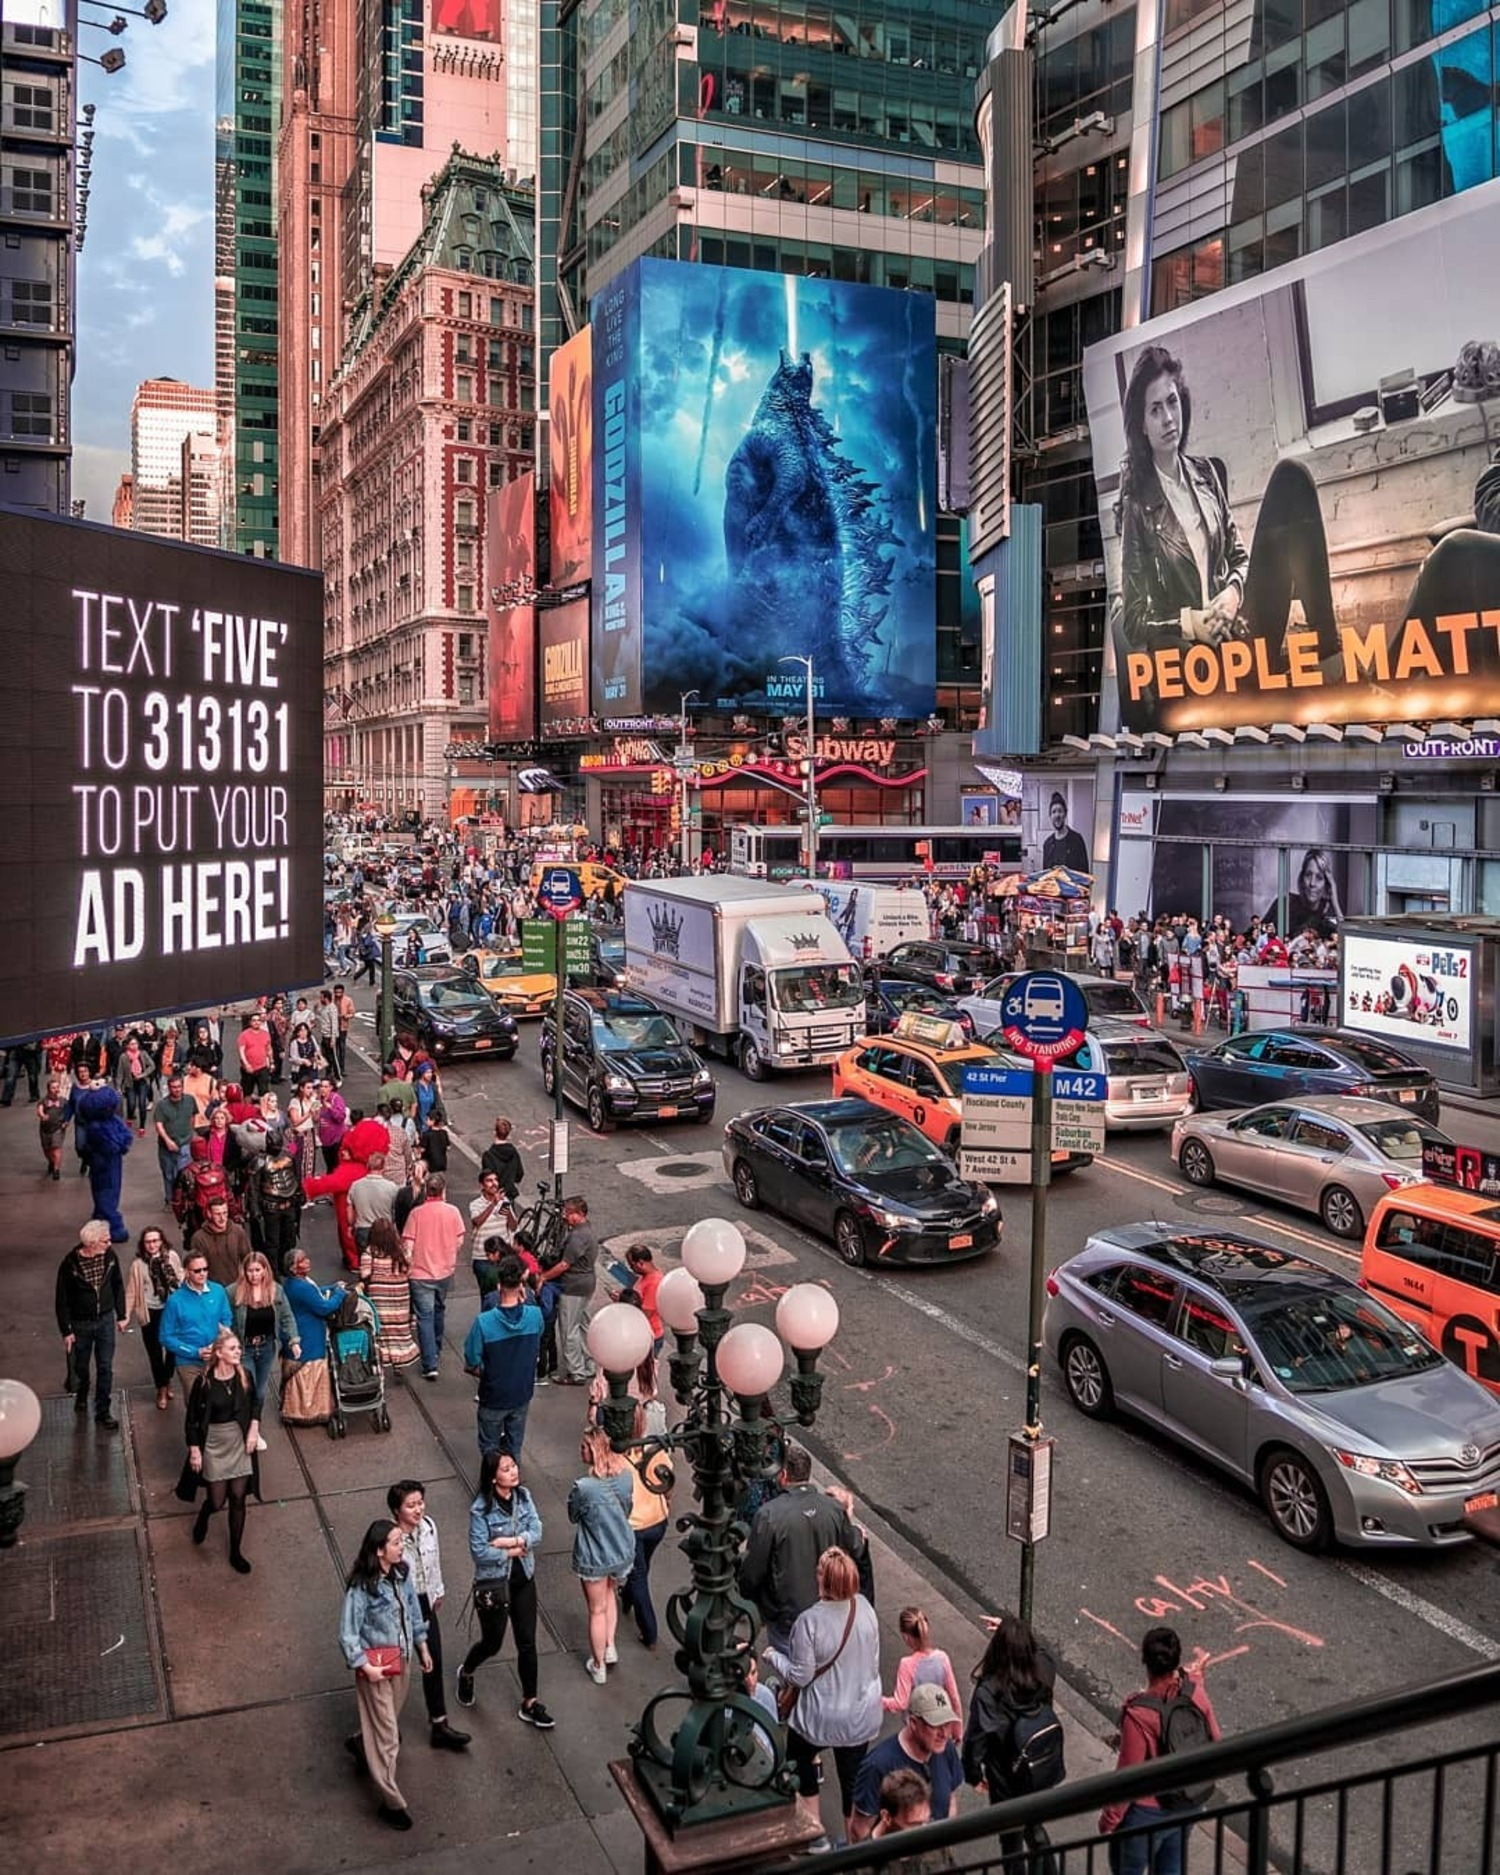 42nd Street, Times Square, New York, New York